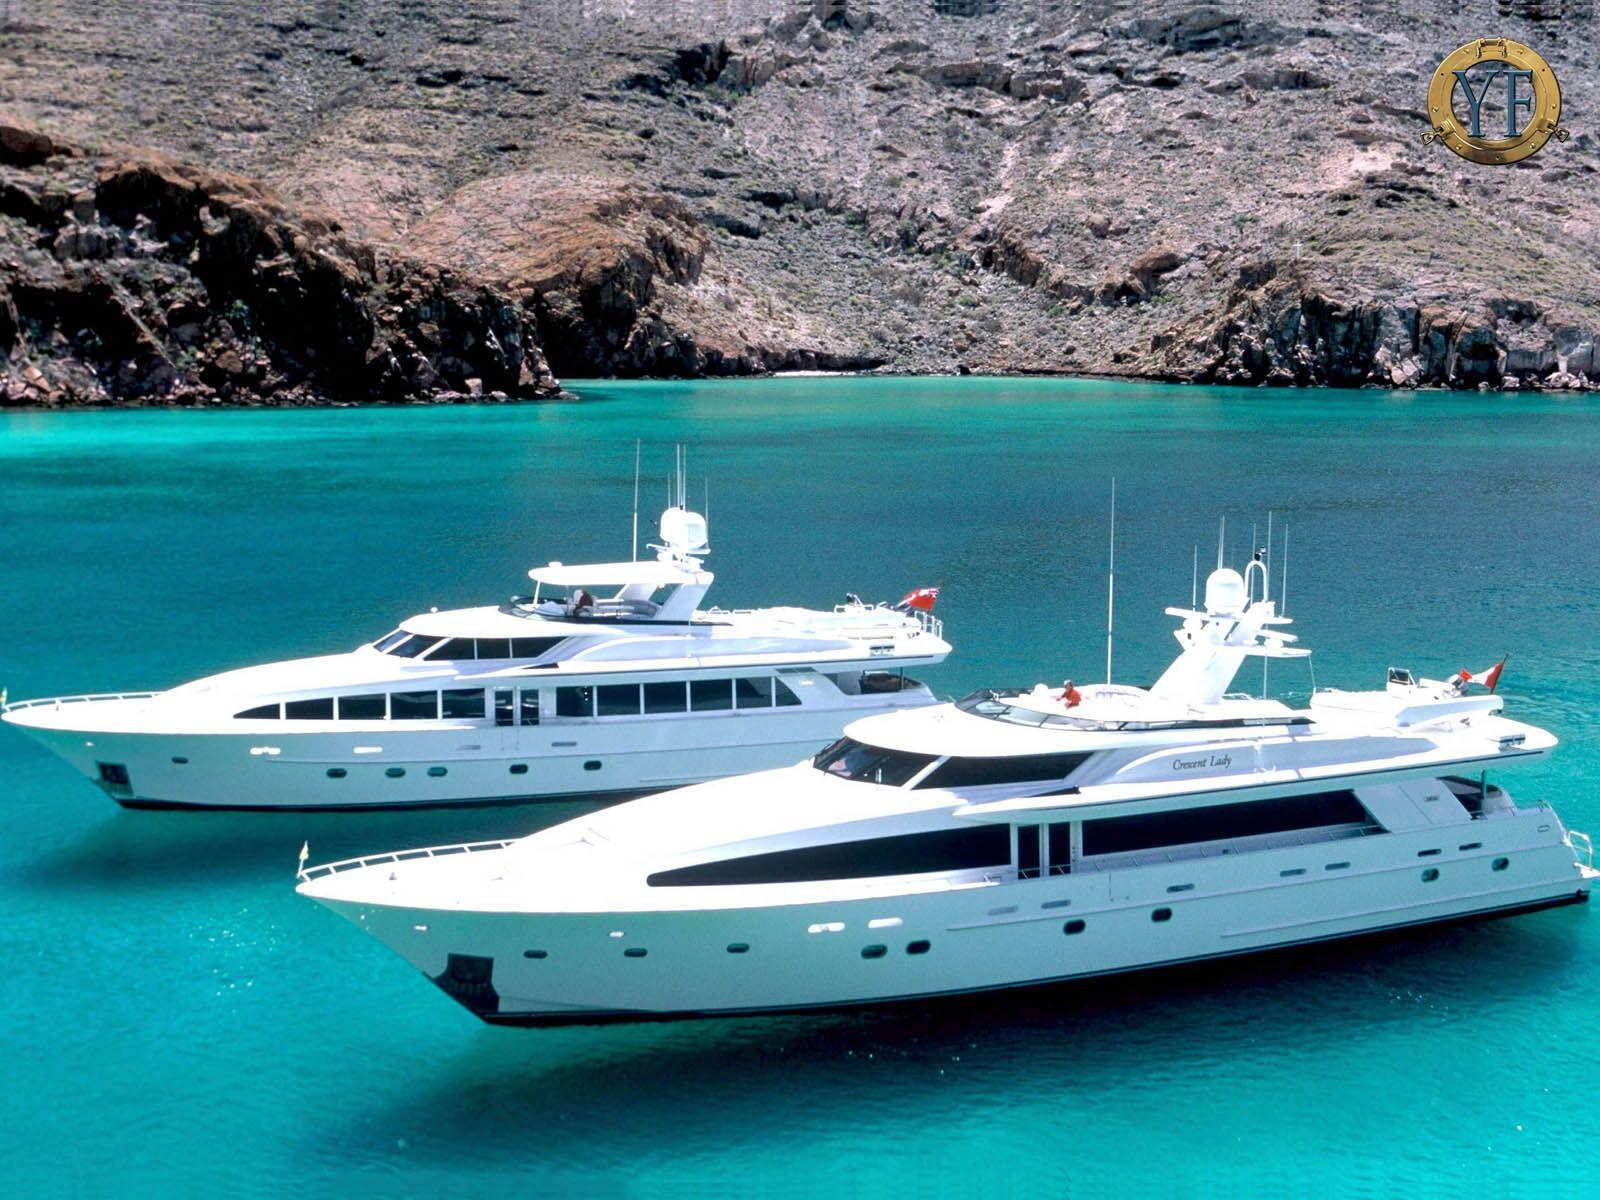 Crescent 1600 1600×1200 HD Yacht Wallpapers HD Yacht